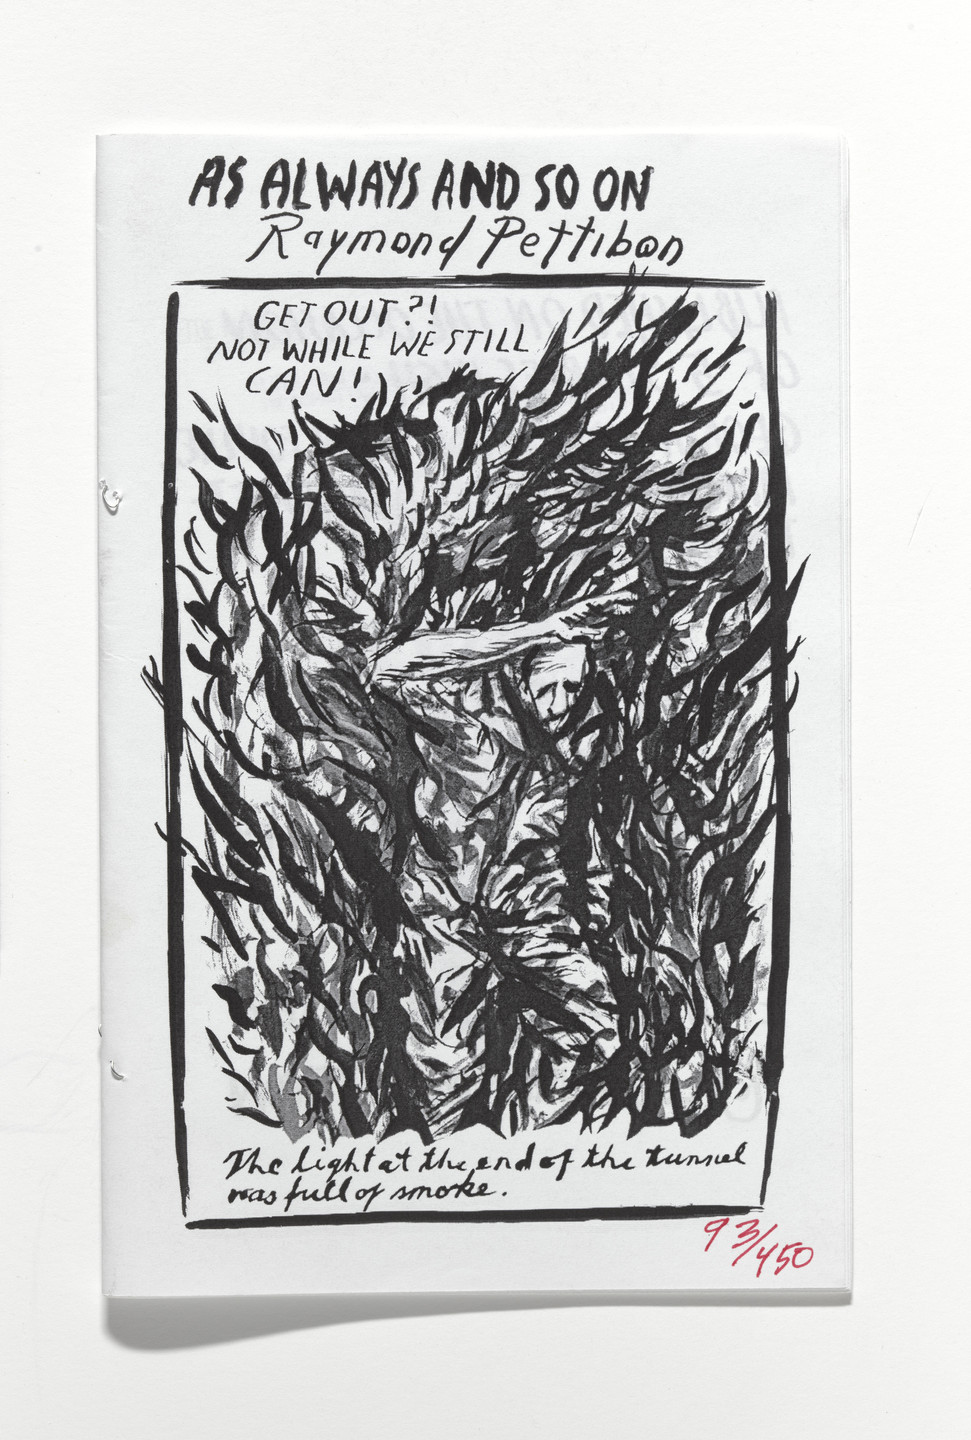 Raymond Pettibon. As Always and So On. 2006